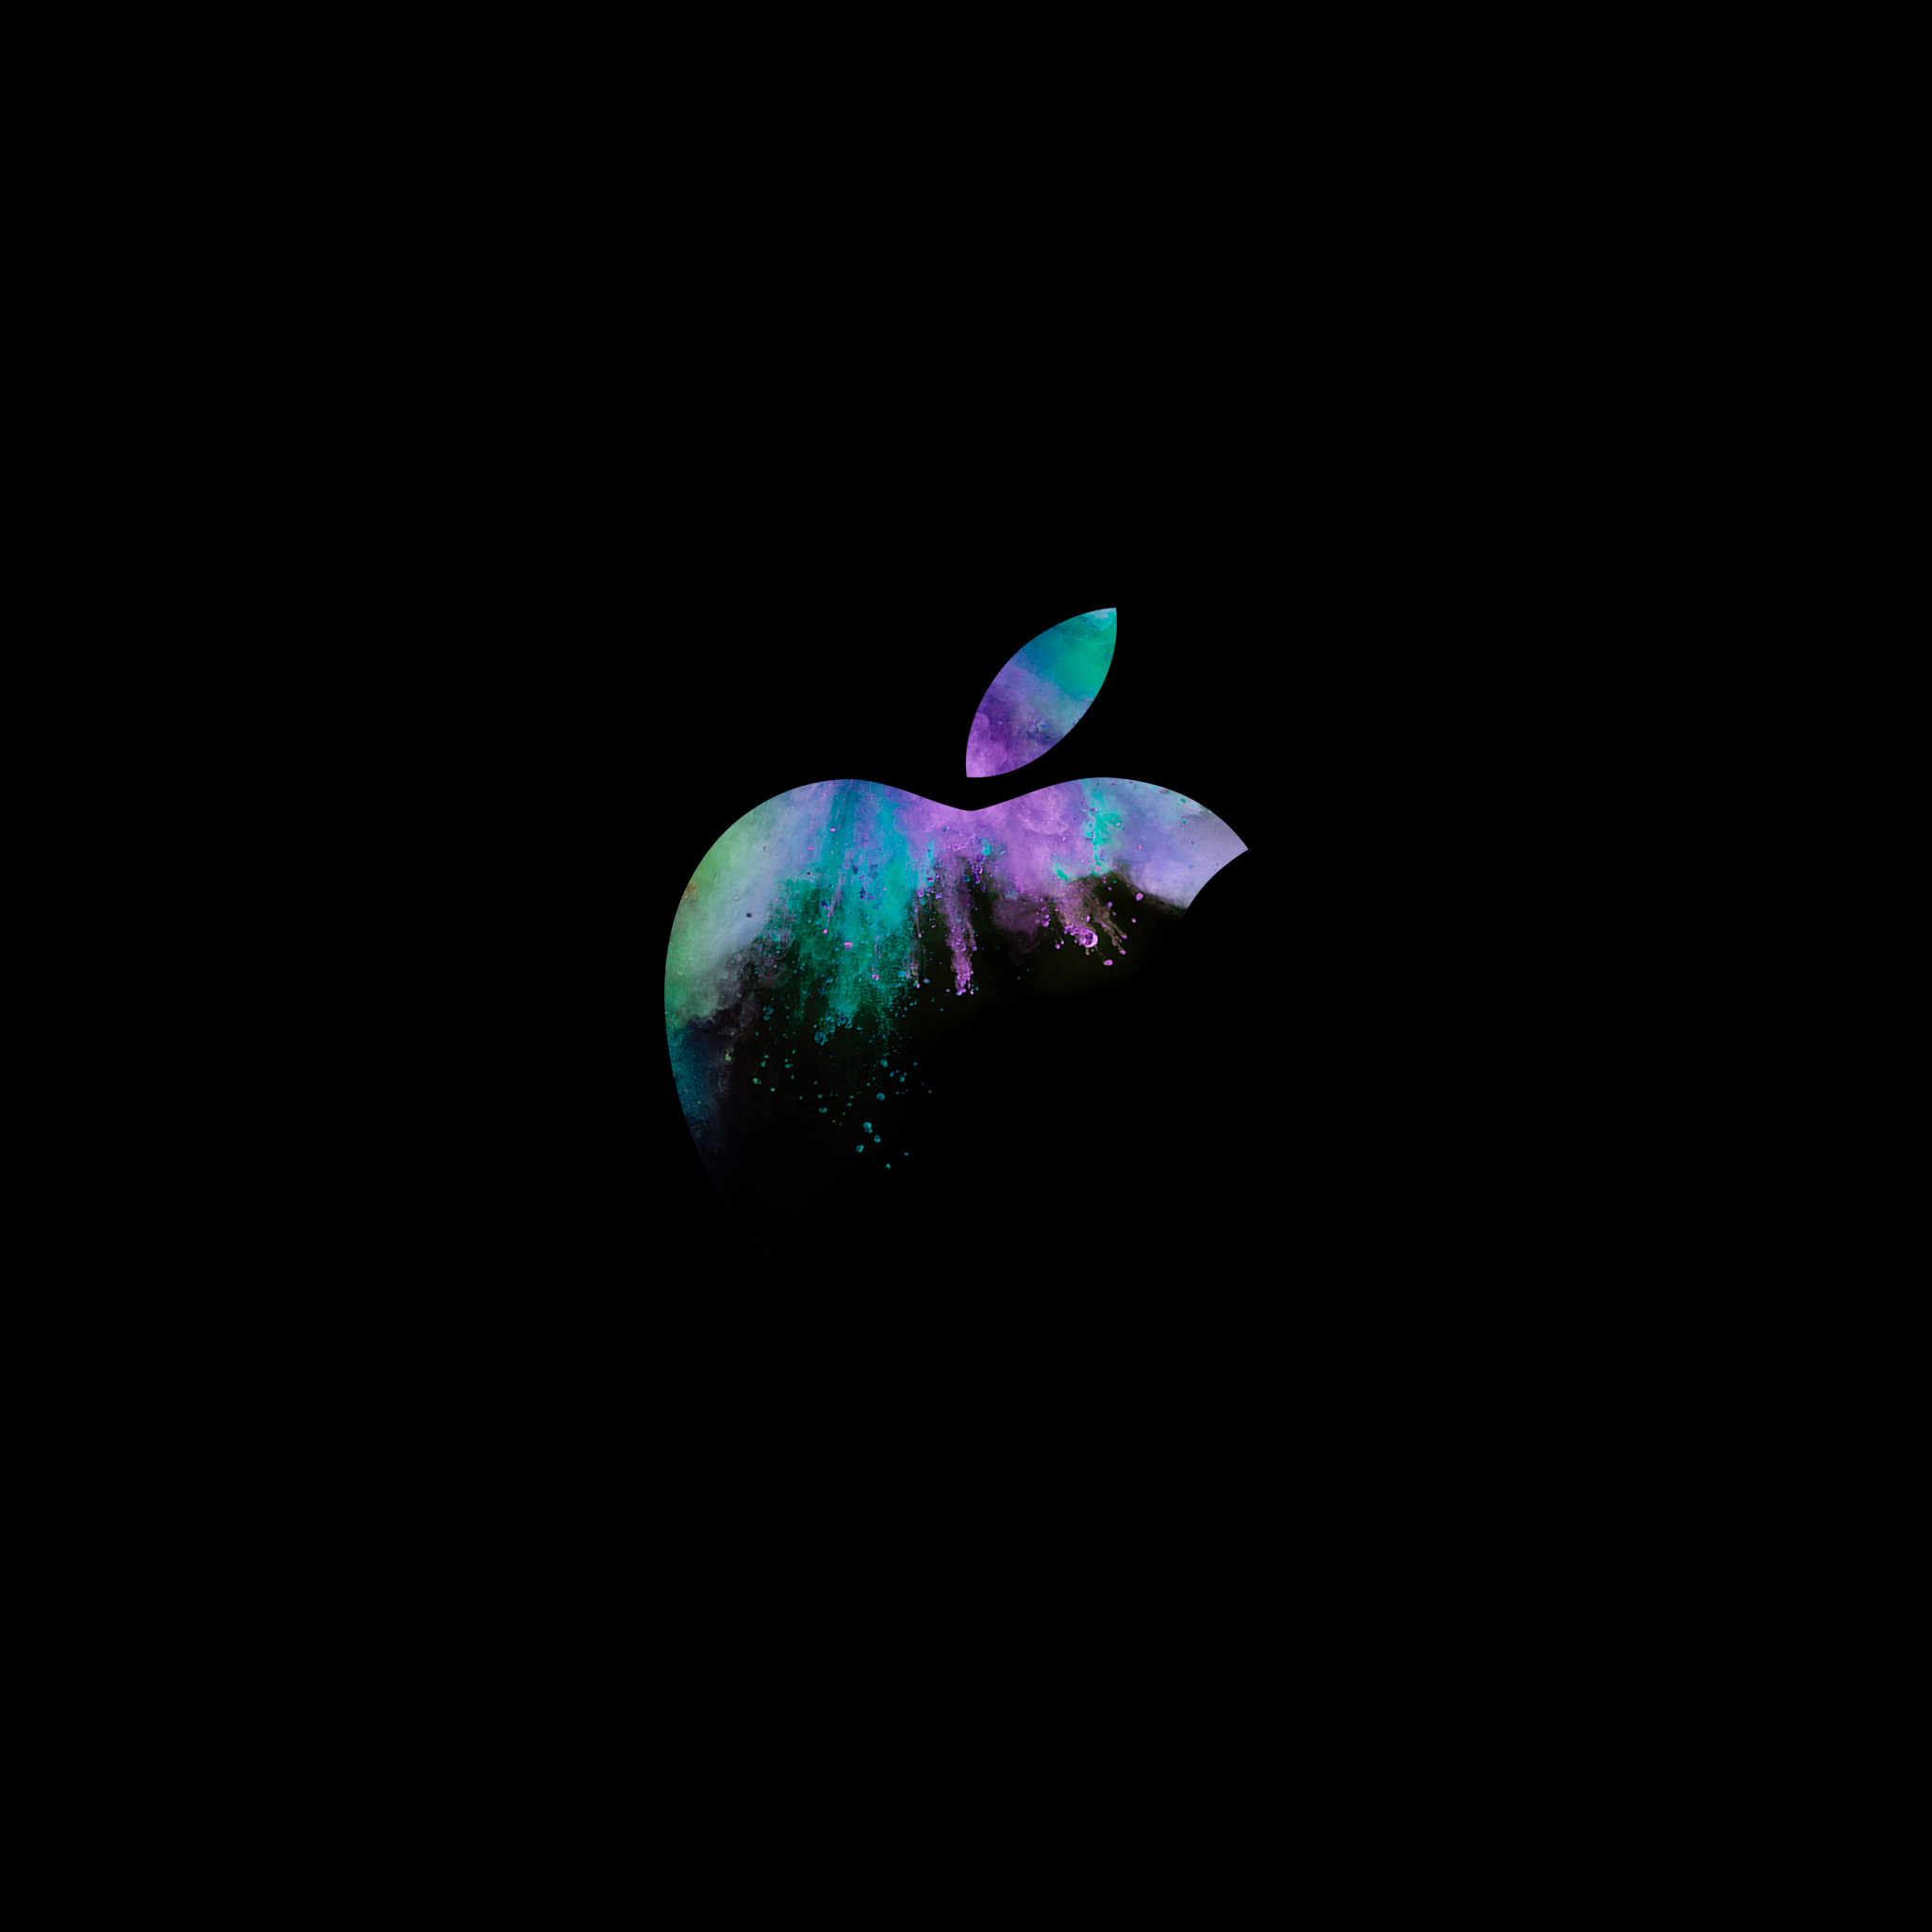 Apple October Event Wallpapers Chello Againd Applewatchfaces Apple Watch Faces Apple Wallpaper Apple Watch Wallpaper